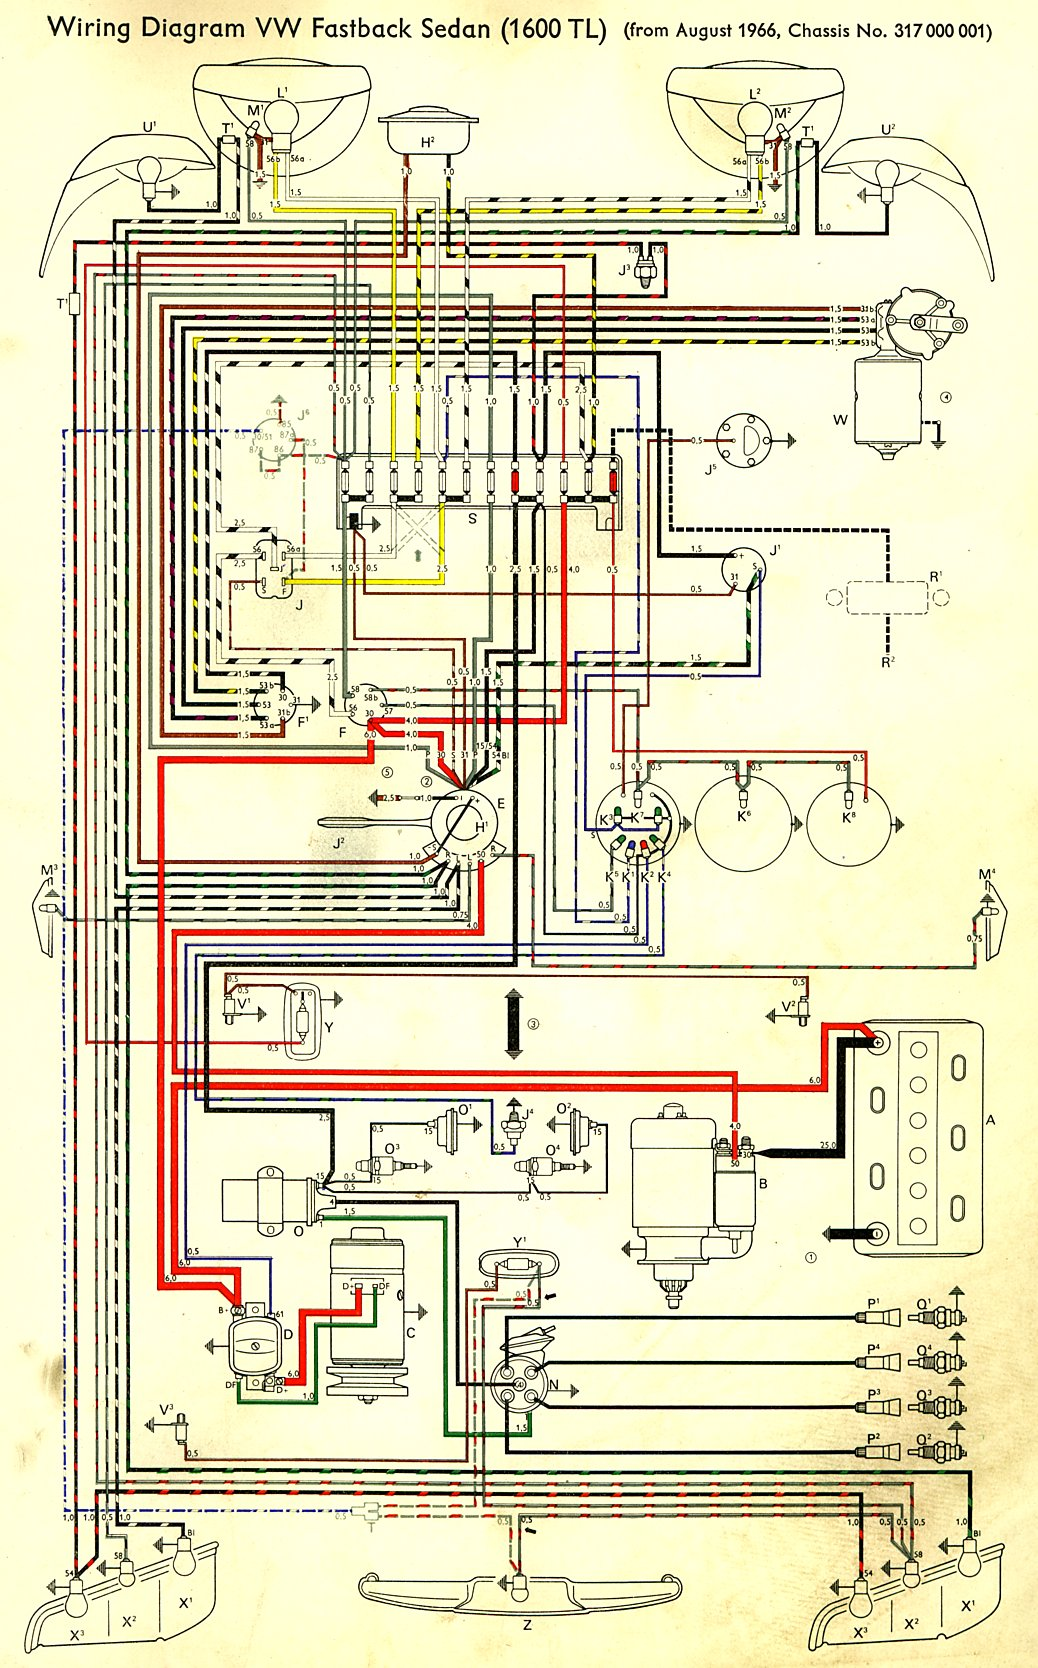 type3_1600TL_67 vw type 1 wiring diagram 1961 vw type 1 wiring diagram \u2022 wiring wiring harness for 1967 vw beetle at gsmx.co